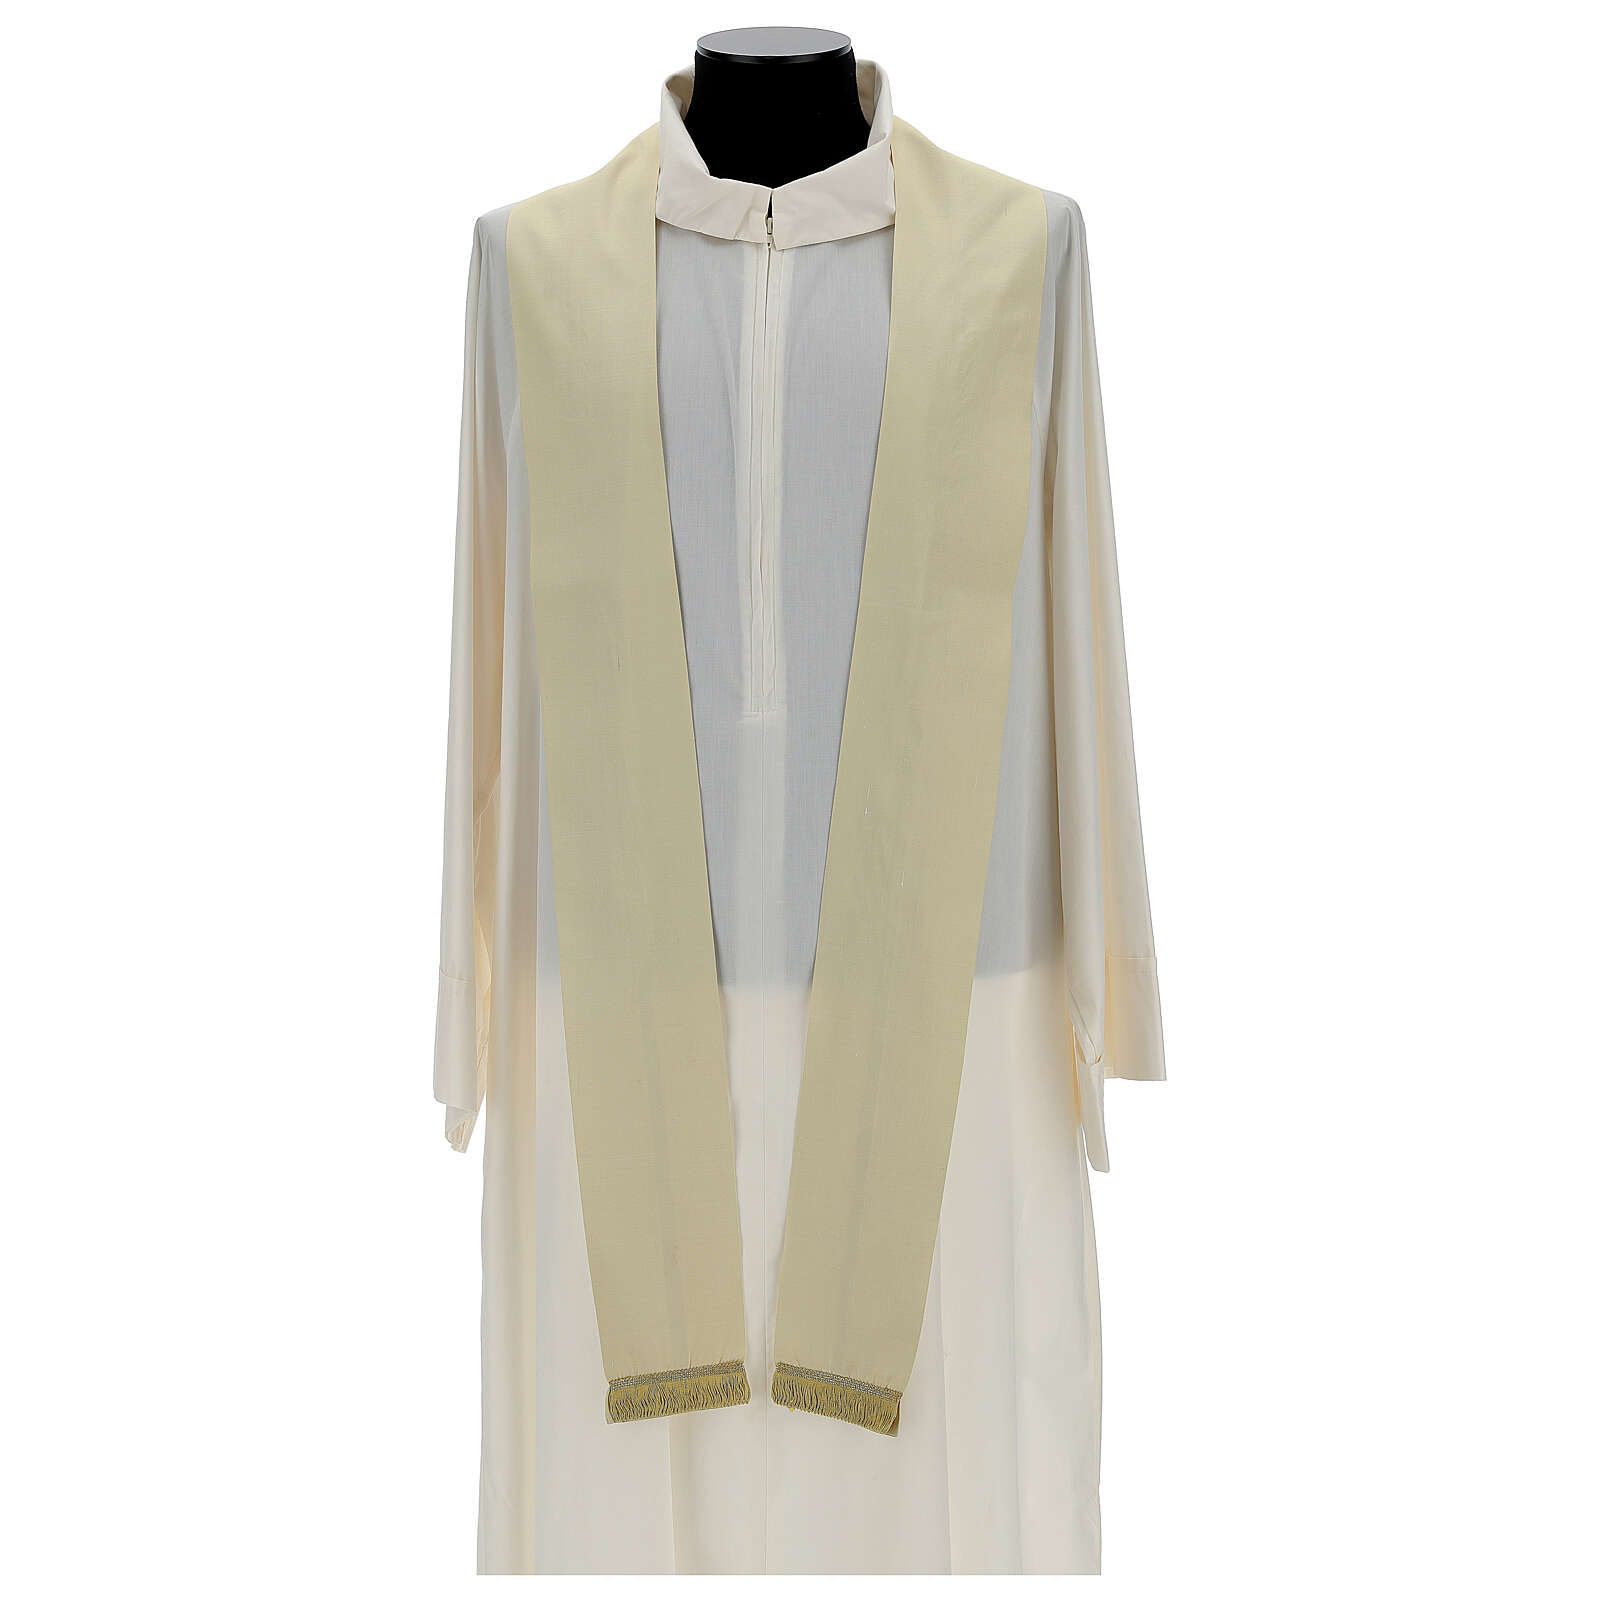 Ivory silk chasuble with applied gallons 4